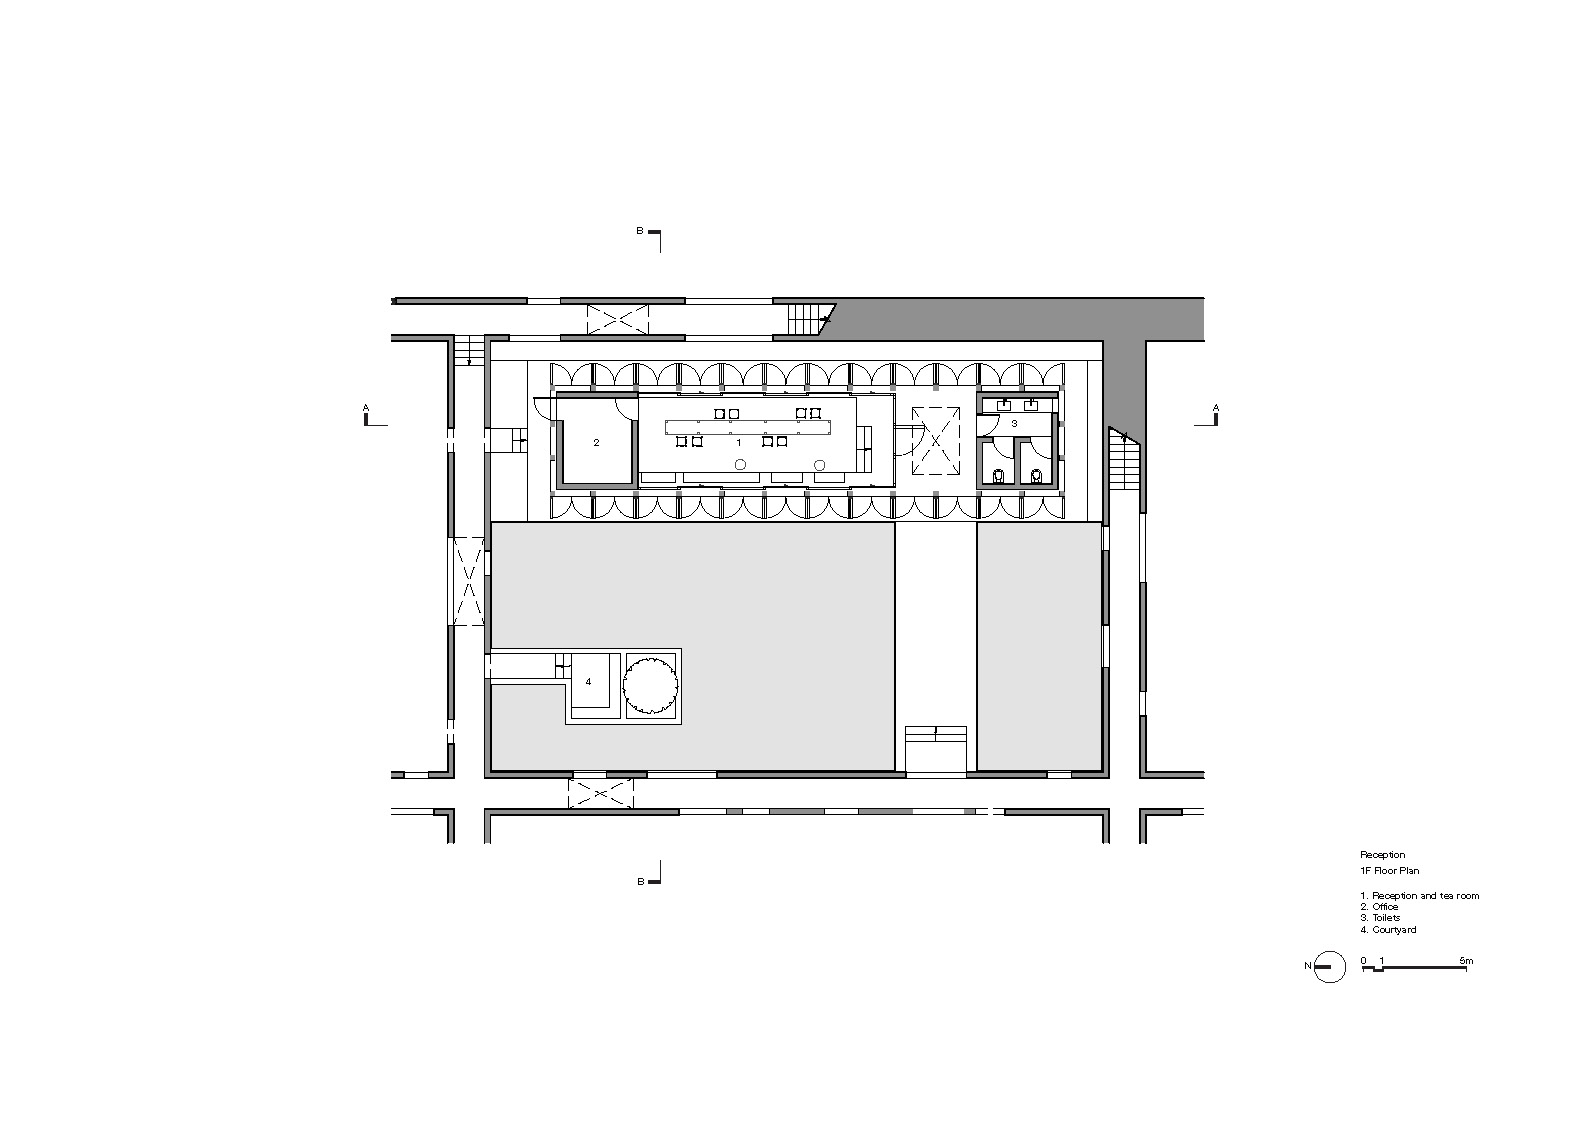 Reception Floor Plan 1F Neri&Hu Design and Research Office}